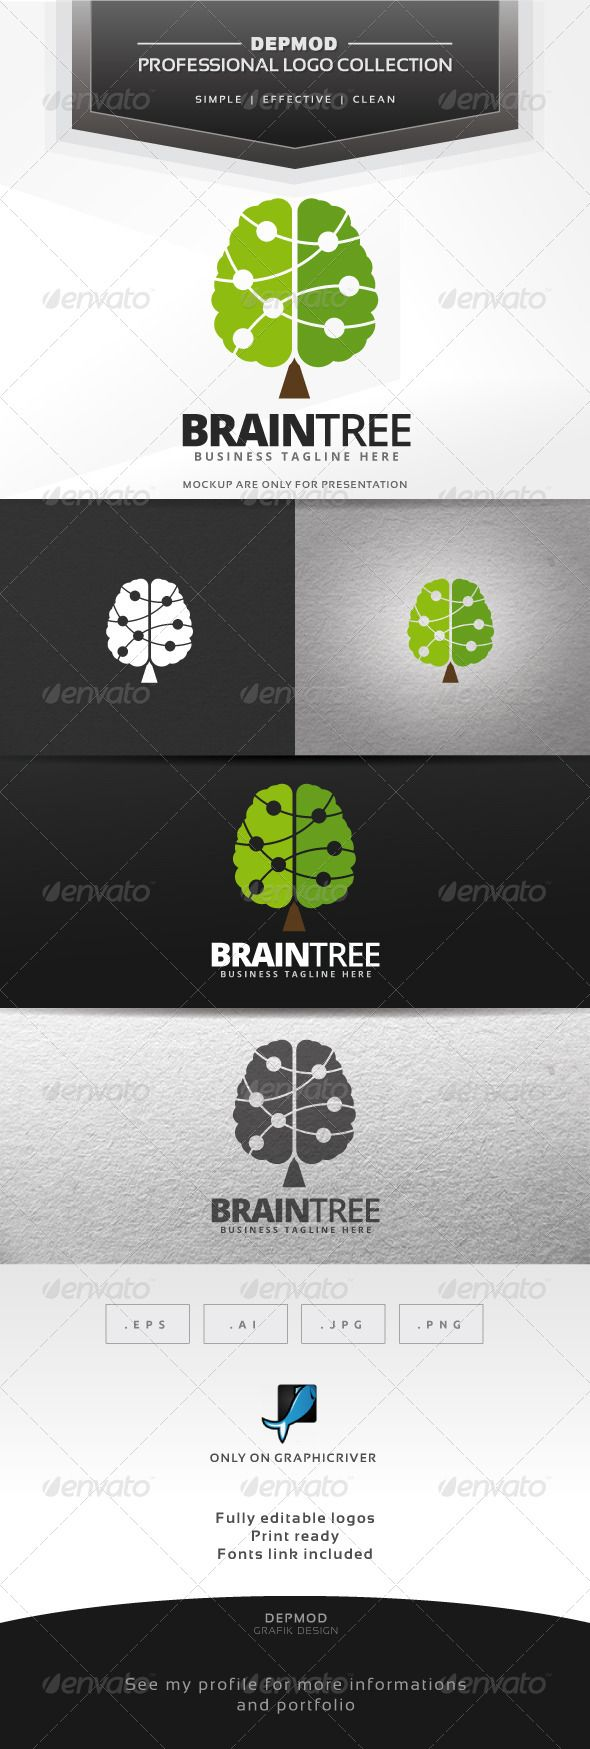 Brain Tree - Logo Design Template Vector #logotype Download it here: http://graphicriver.net/item/brain-tree-logo/7645863?s_rank=1604?ref=nesto